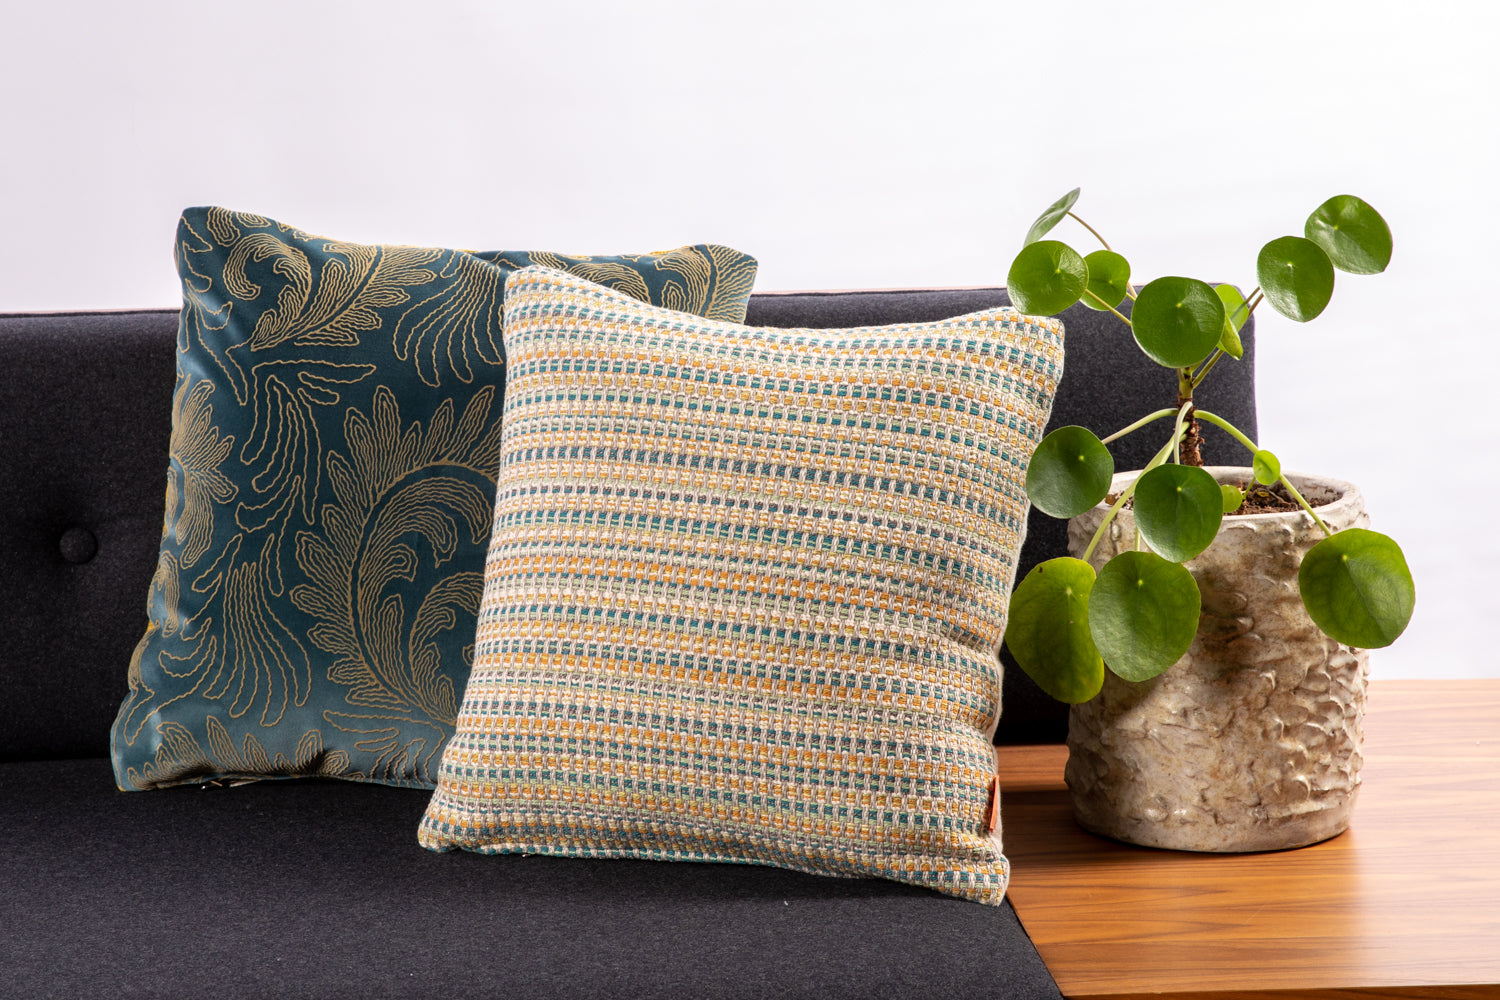 ffabb toss pillows, RADG & Maxwell fabrics velvet